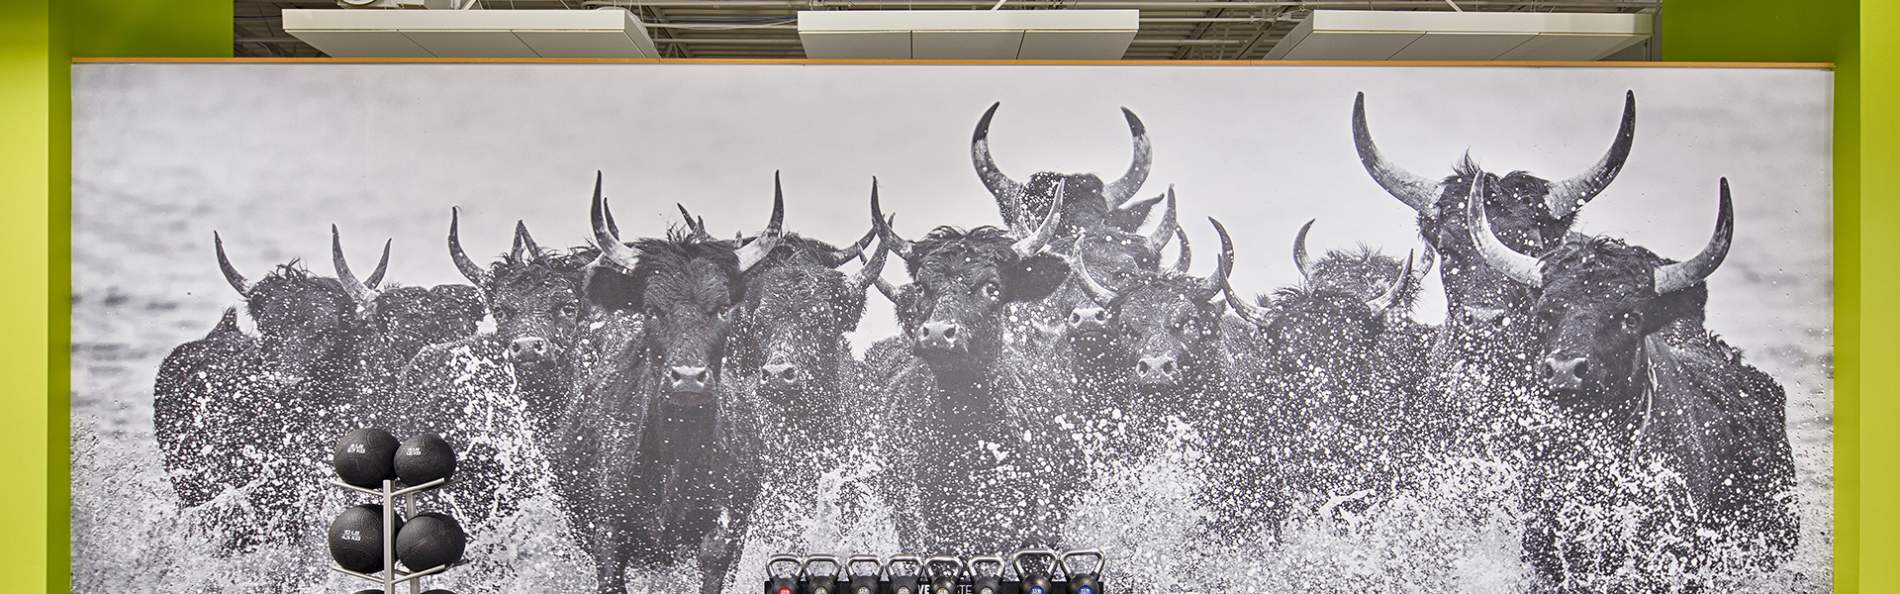 Bull mural in the USF wellness facility